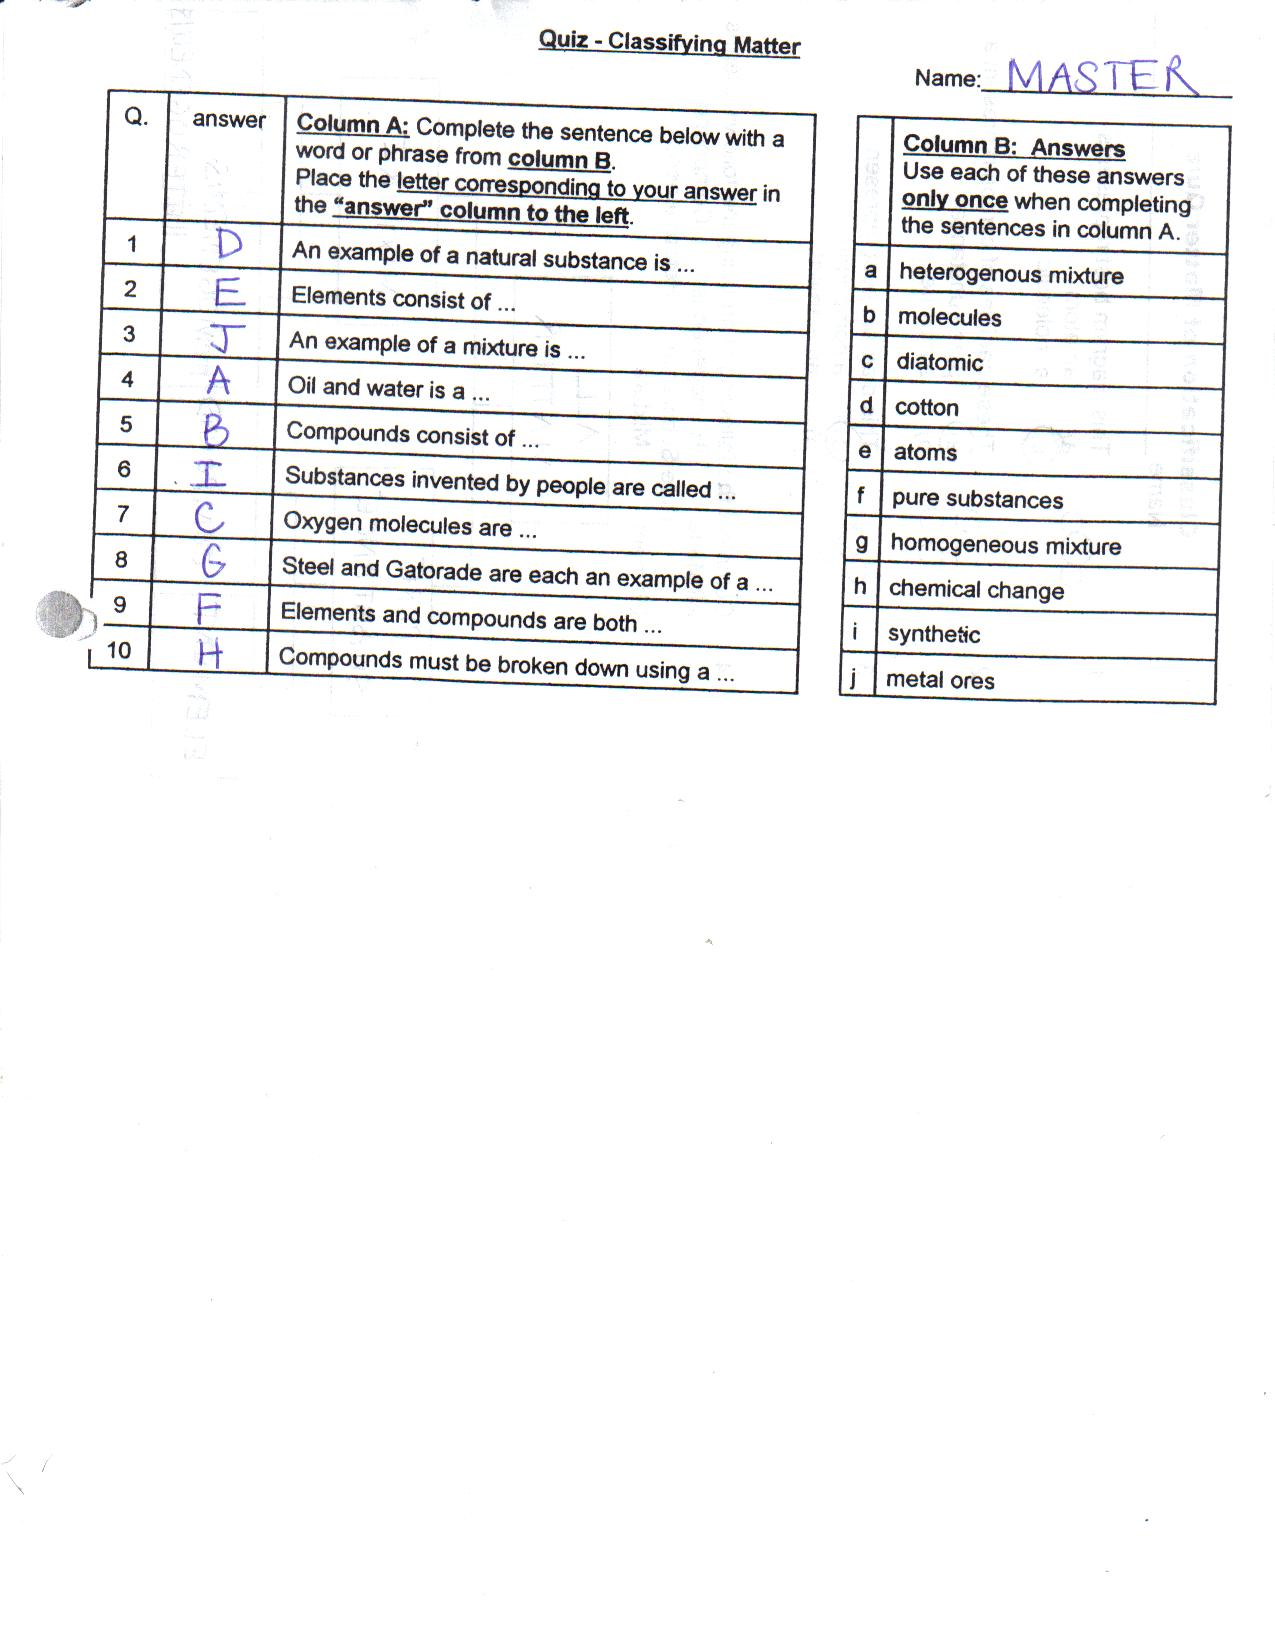 Classification of Matter Quiz.